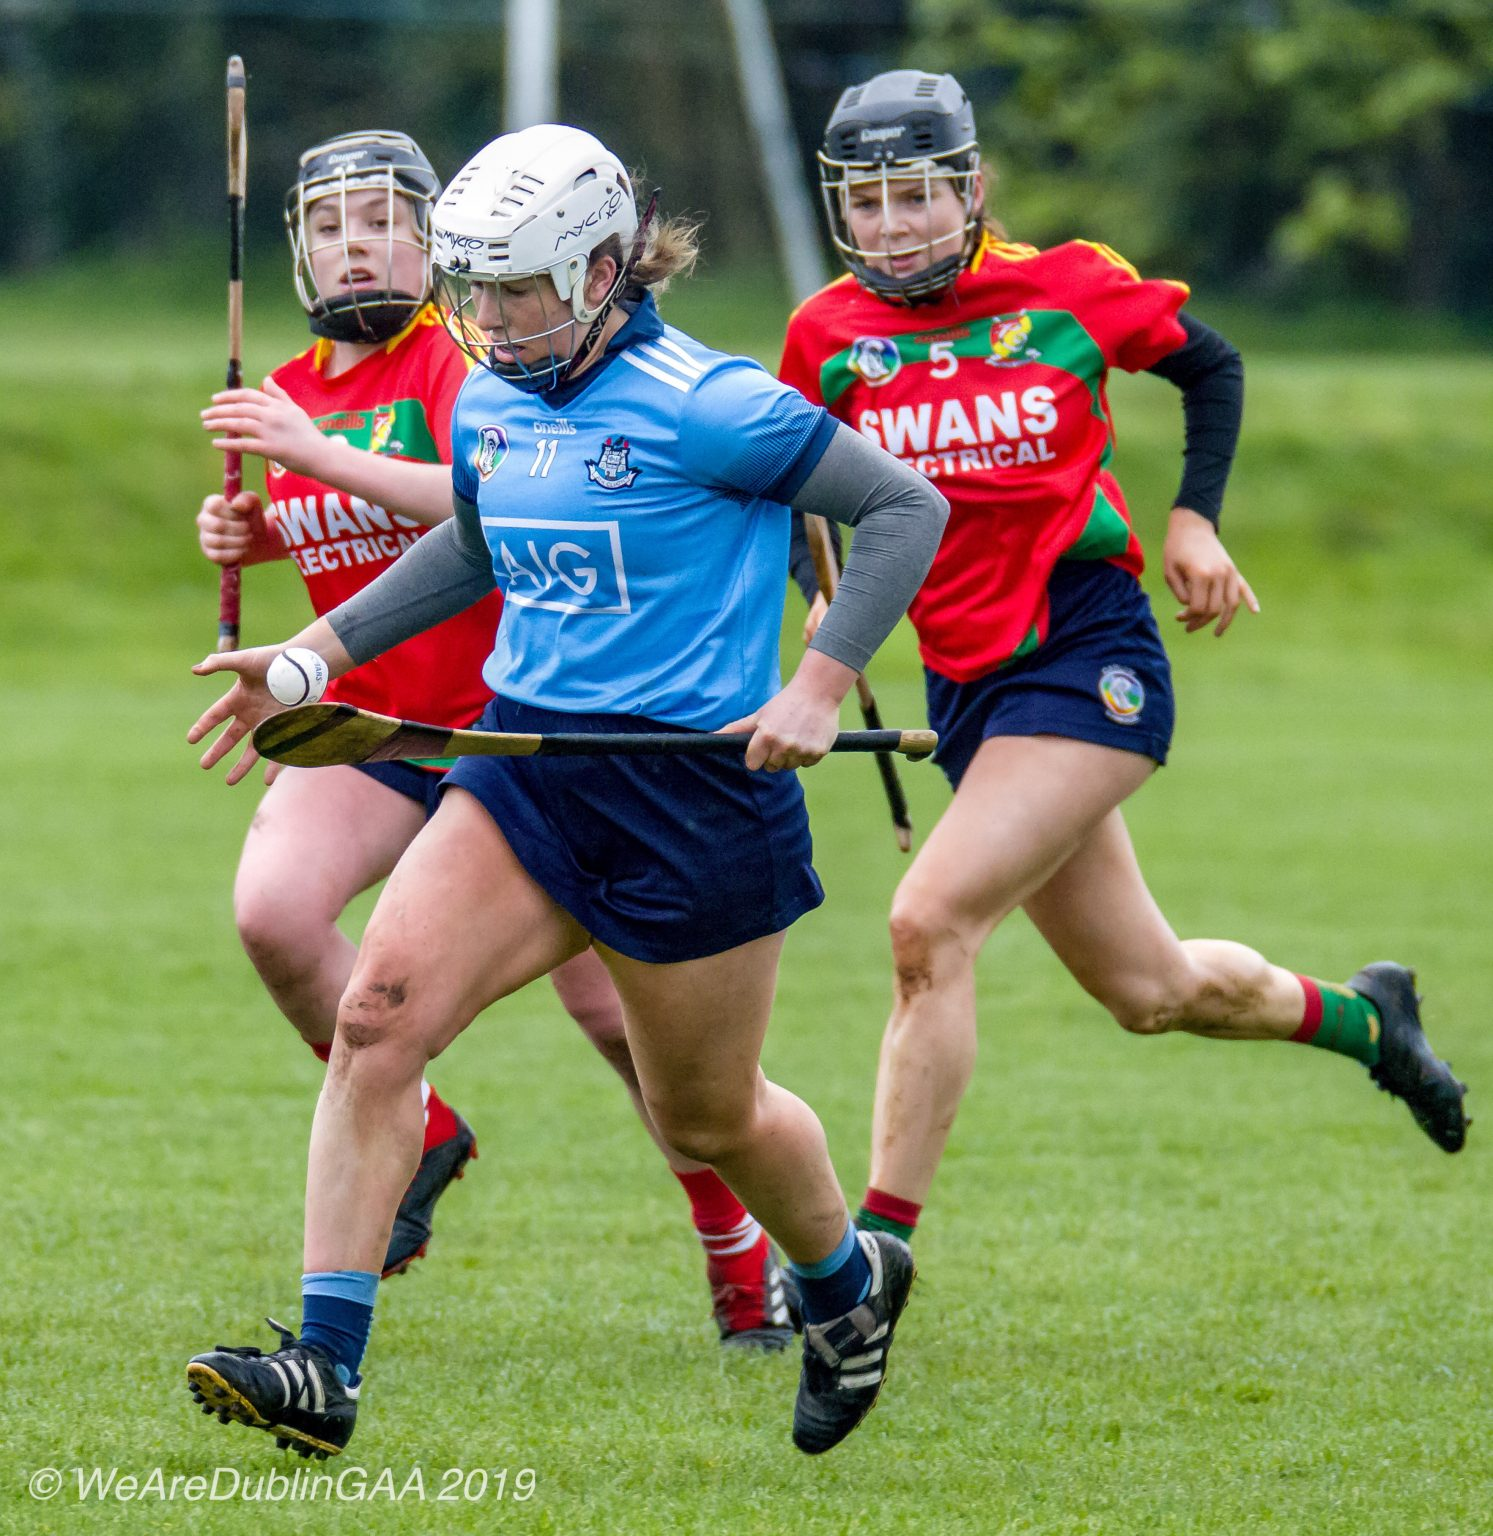 A Dublin Intermediate Camogie Player In a sky blue jersey, navy skort and white helmet raced away from two Carlow players in red jerseys and navy skorts during the relegation playoff game which Dublin won to secure their Division 2 status